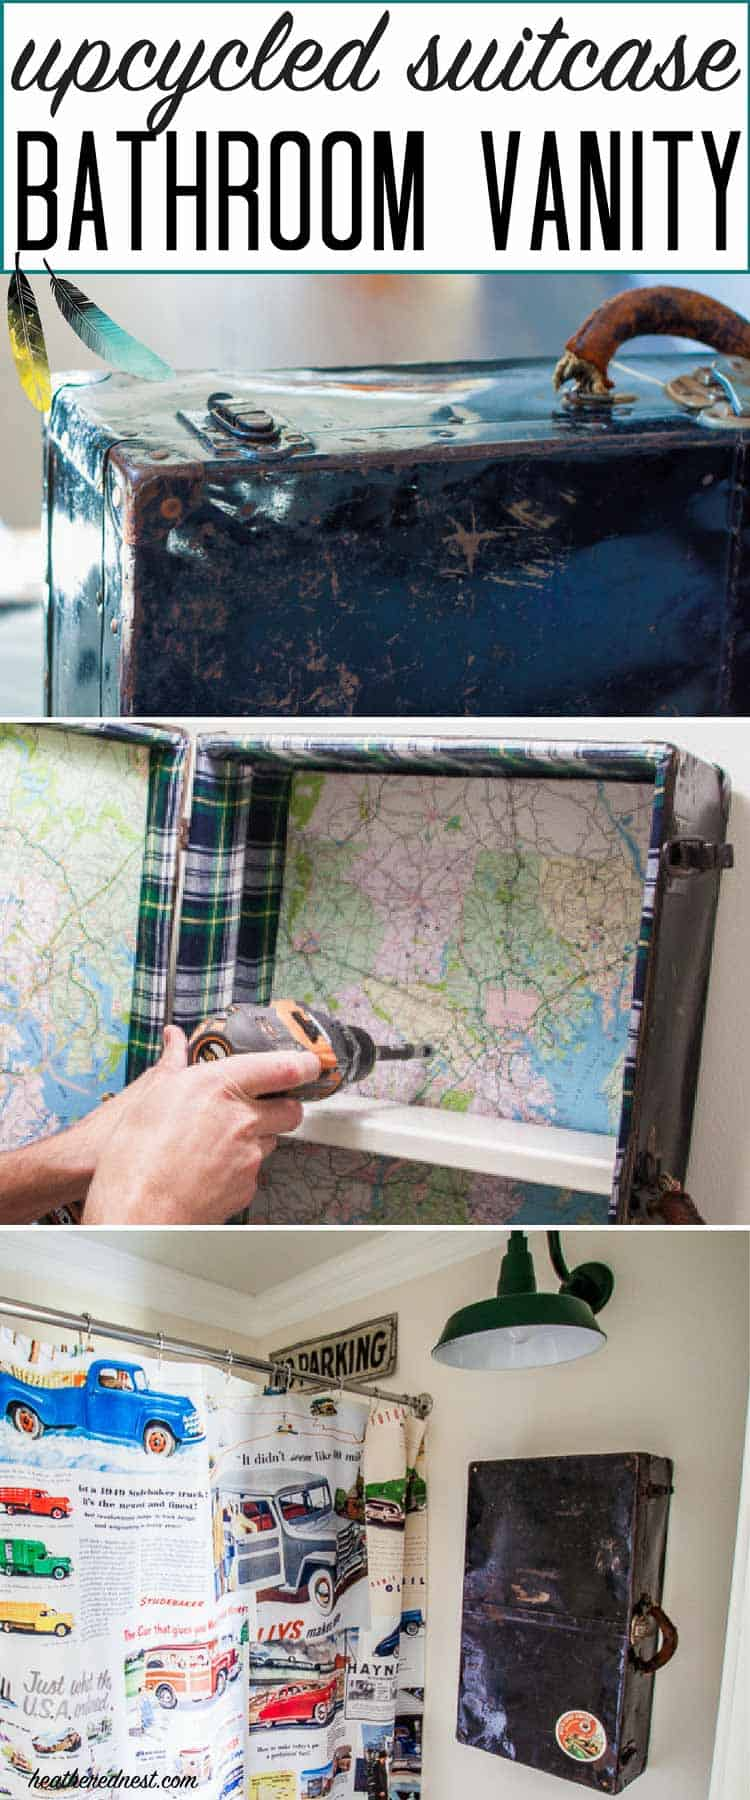 So COOL! Tutorial for making a DIY medicine cabinet from an upcycled suitcase from heatherednest.com. Vintage suitcases are popular right now. Great old suitcase idea!!